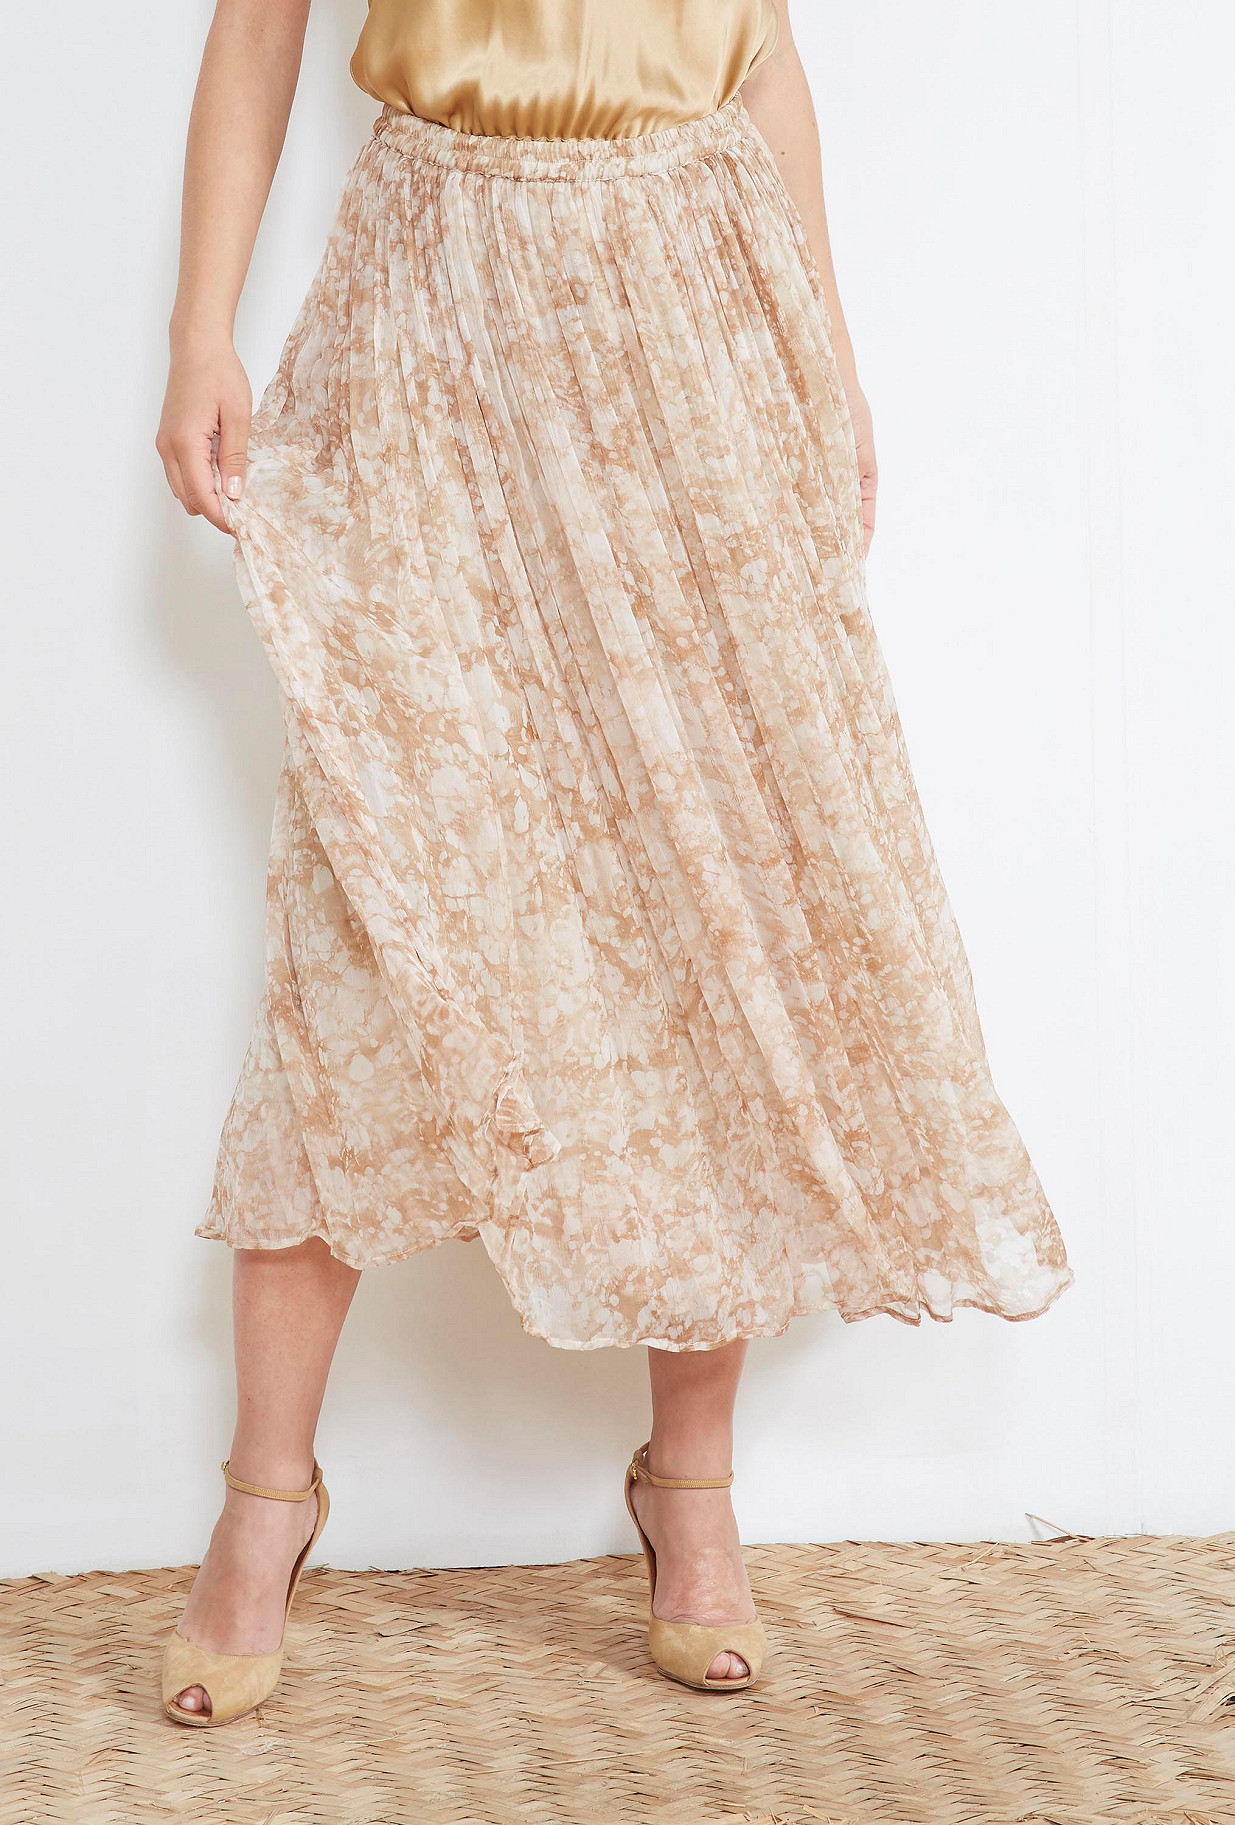 Nude SKIRT Tyler Mes Demoiselles Paris